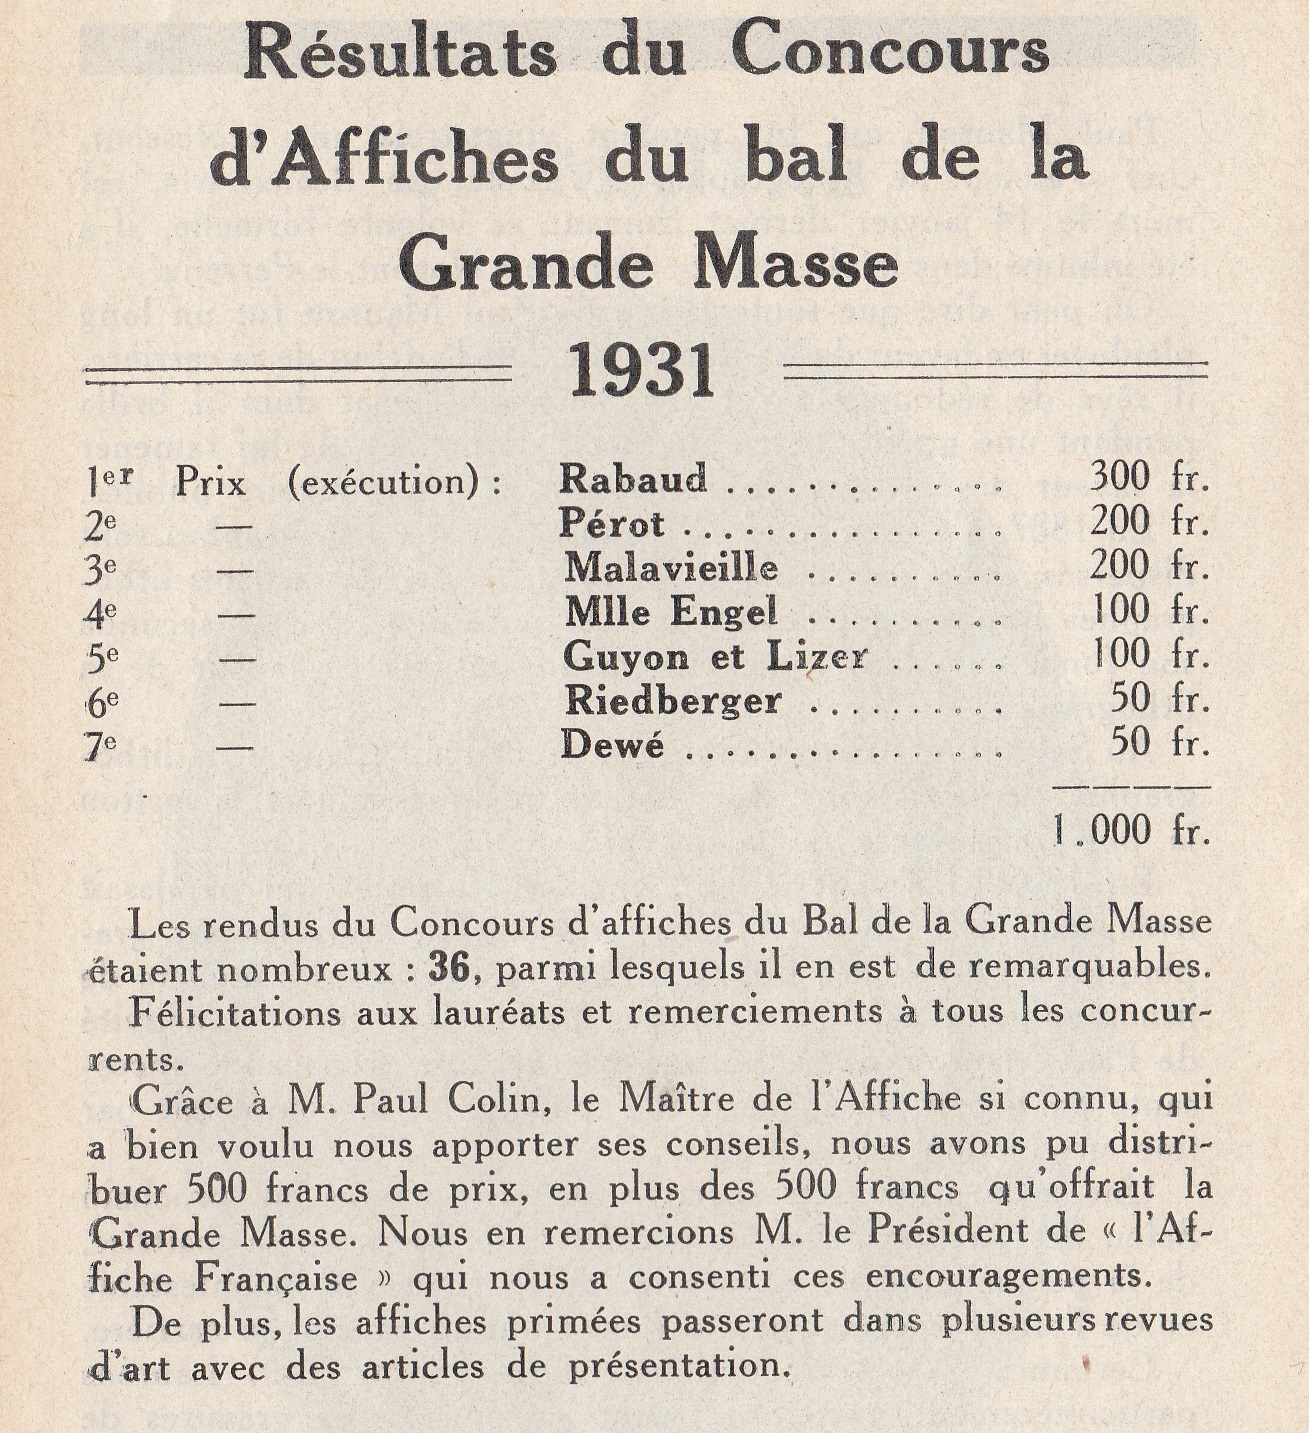 193104_Bulletin-GMBA_Resultat-concours-affiches.jpg